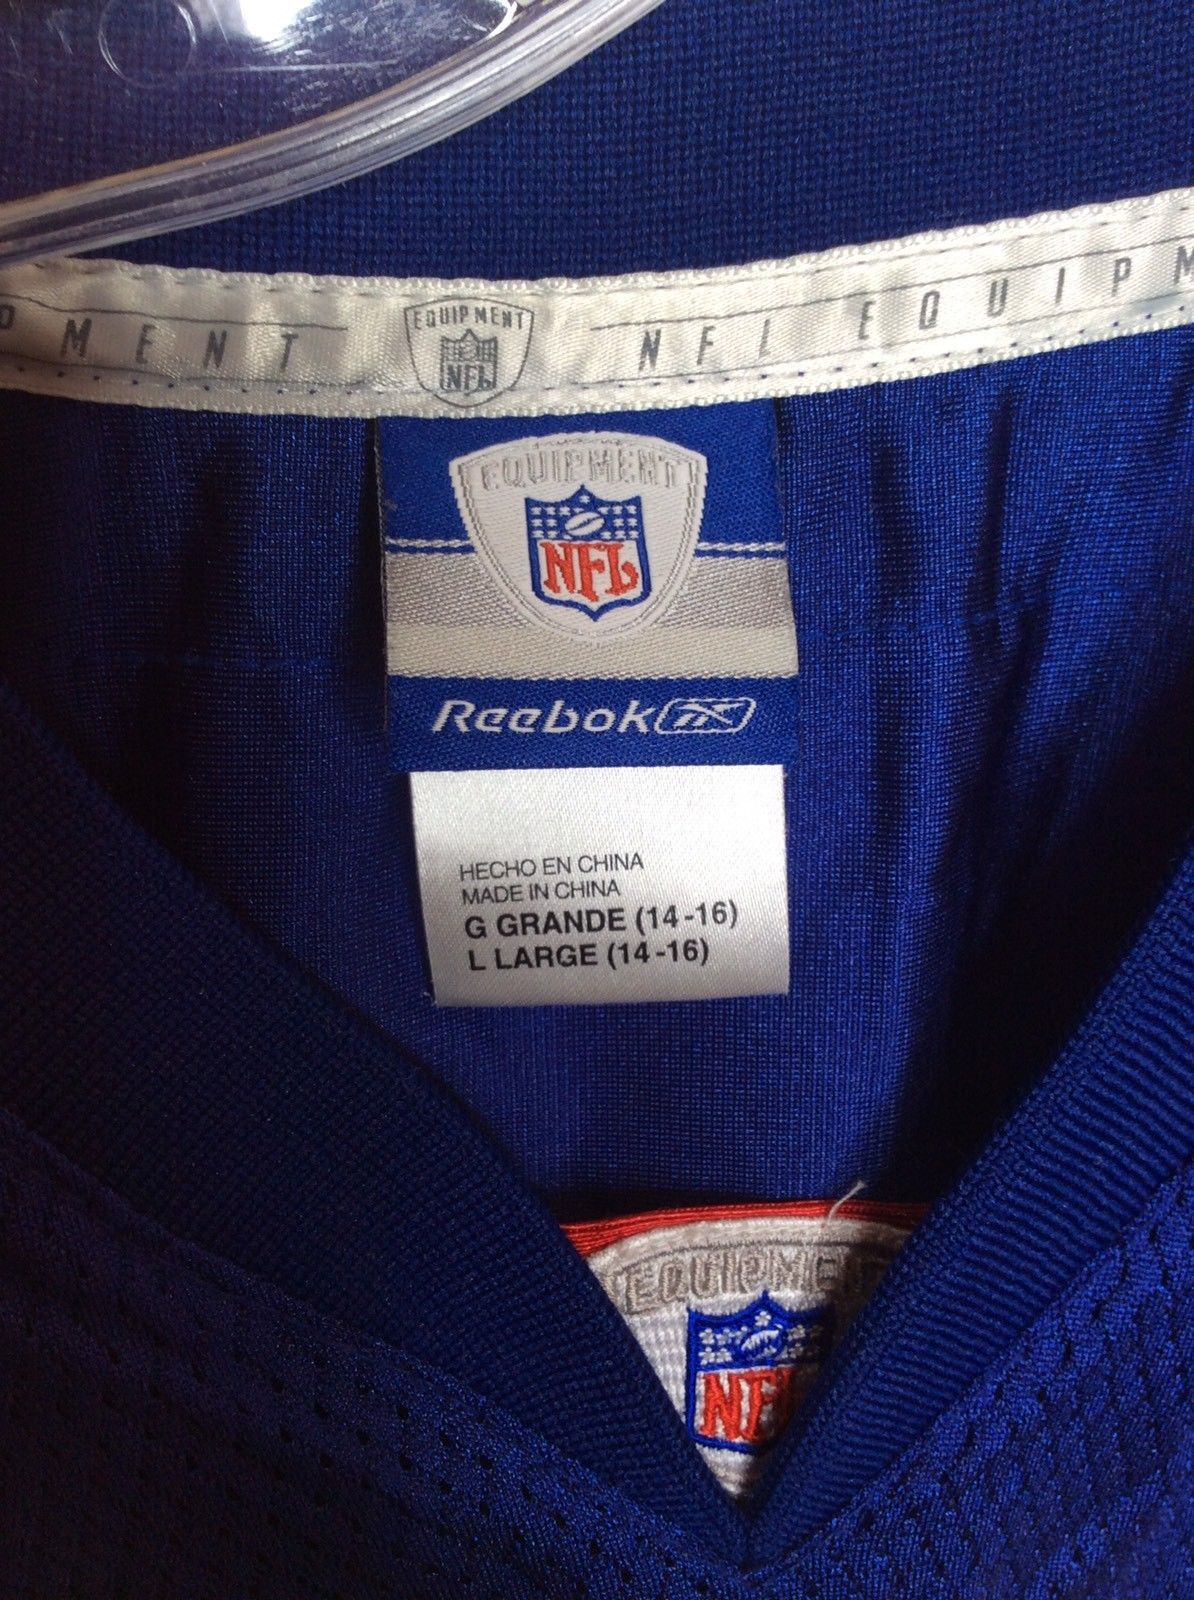 Reebok NFL New York Giants 21 Tiki Barber Football Jersey Blue Youth Large 14-16 image 4